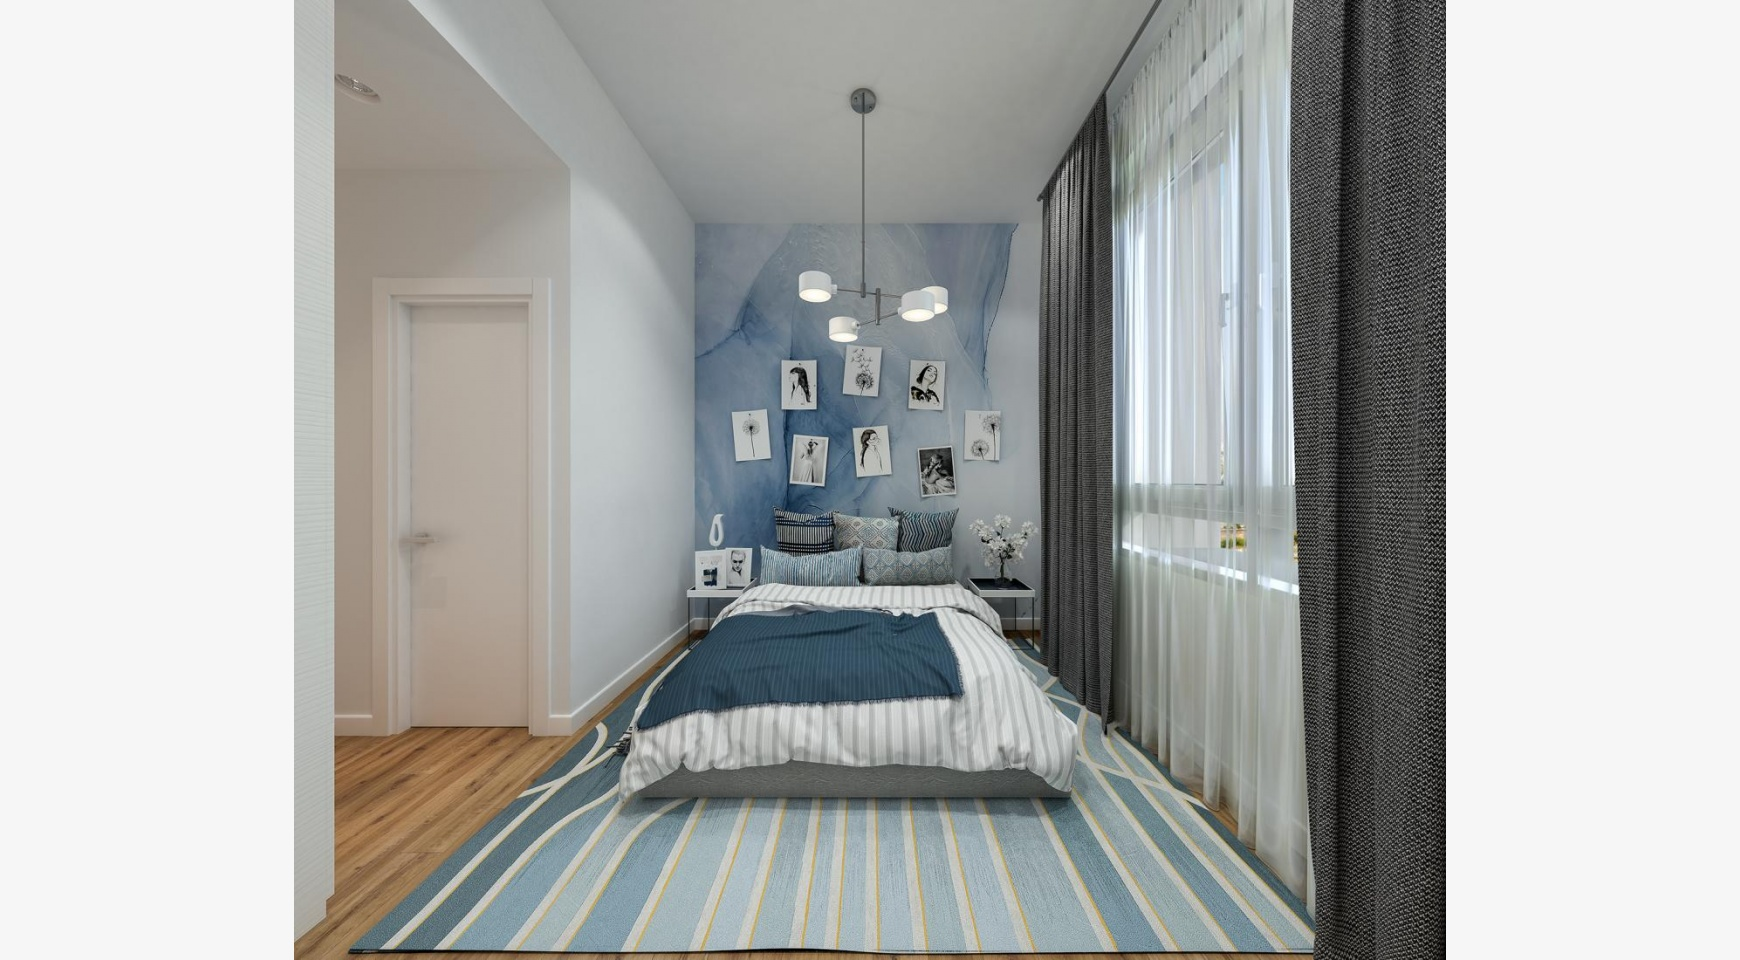 Urban City Residences, Block B. New Spacious 2 Bedroom Apartment 202 in the City Centre - 9